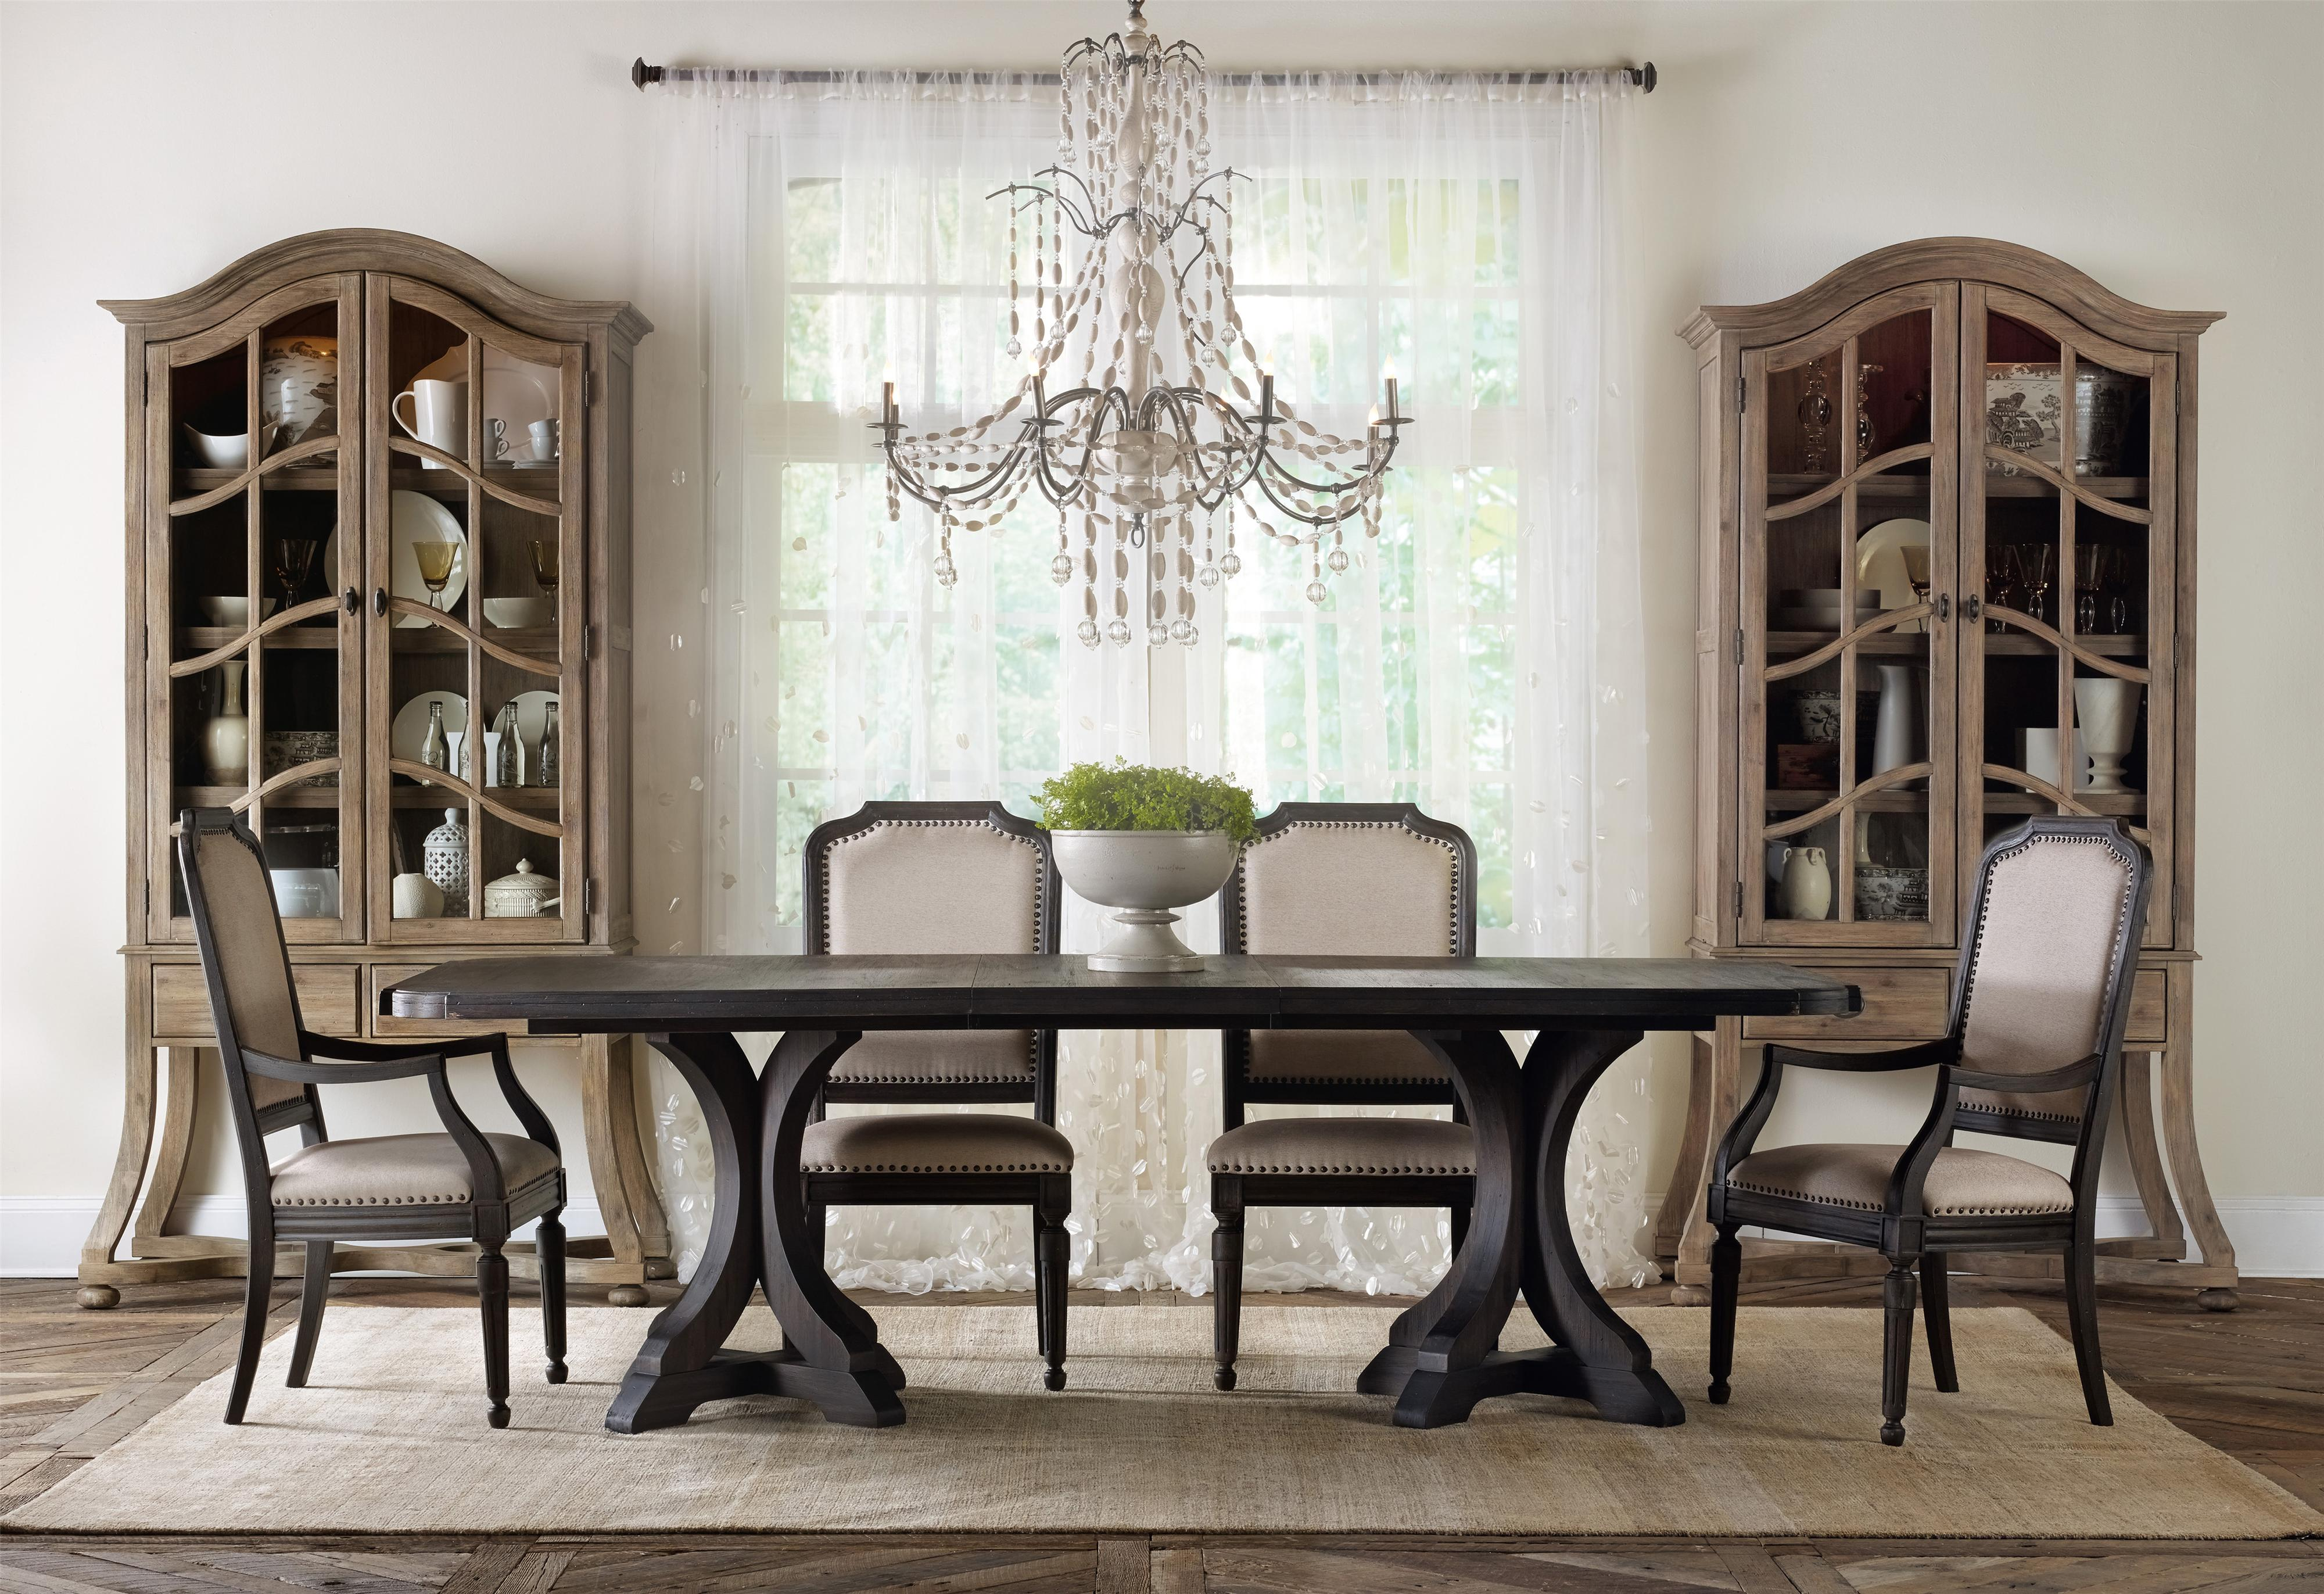 Captivating By Hooker Furniture. Formal Dining Room Group With Display Cabinets